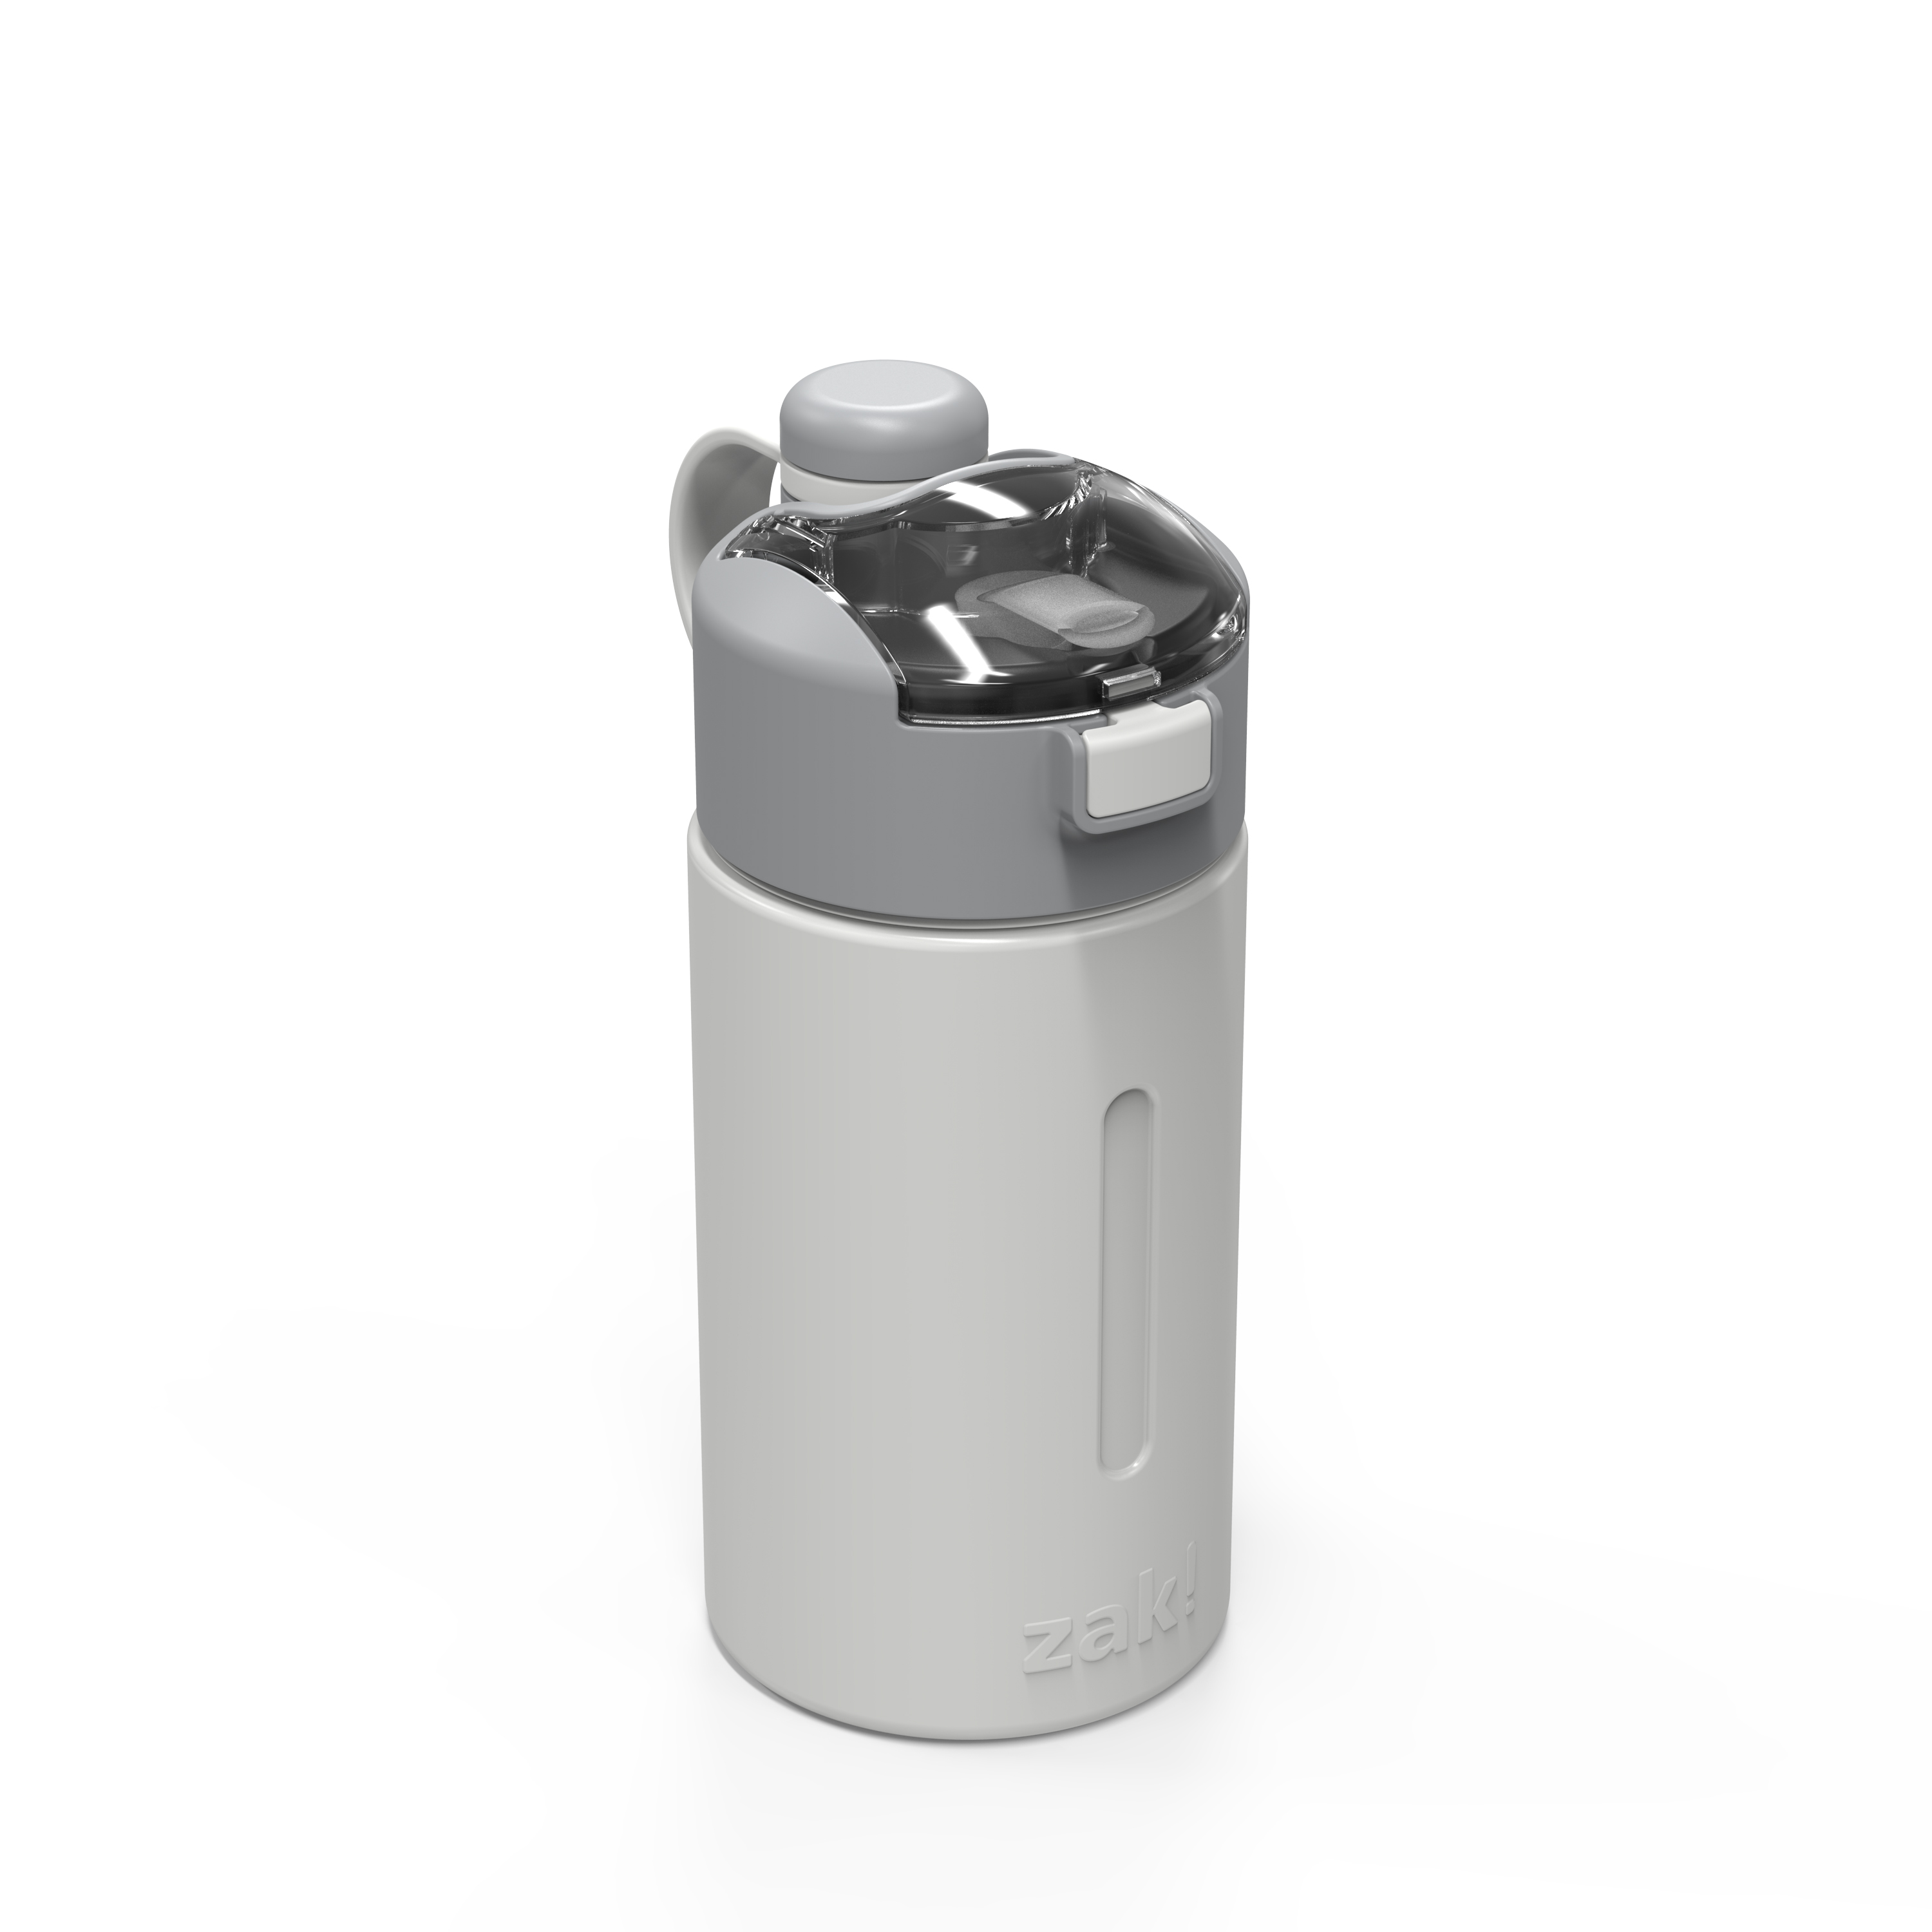 Genesis 12 ounce Vacuum Insulated Stainless Steel Tumbler, Gray slideshow image 2